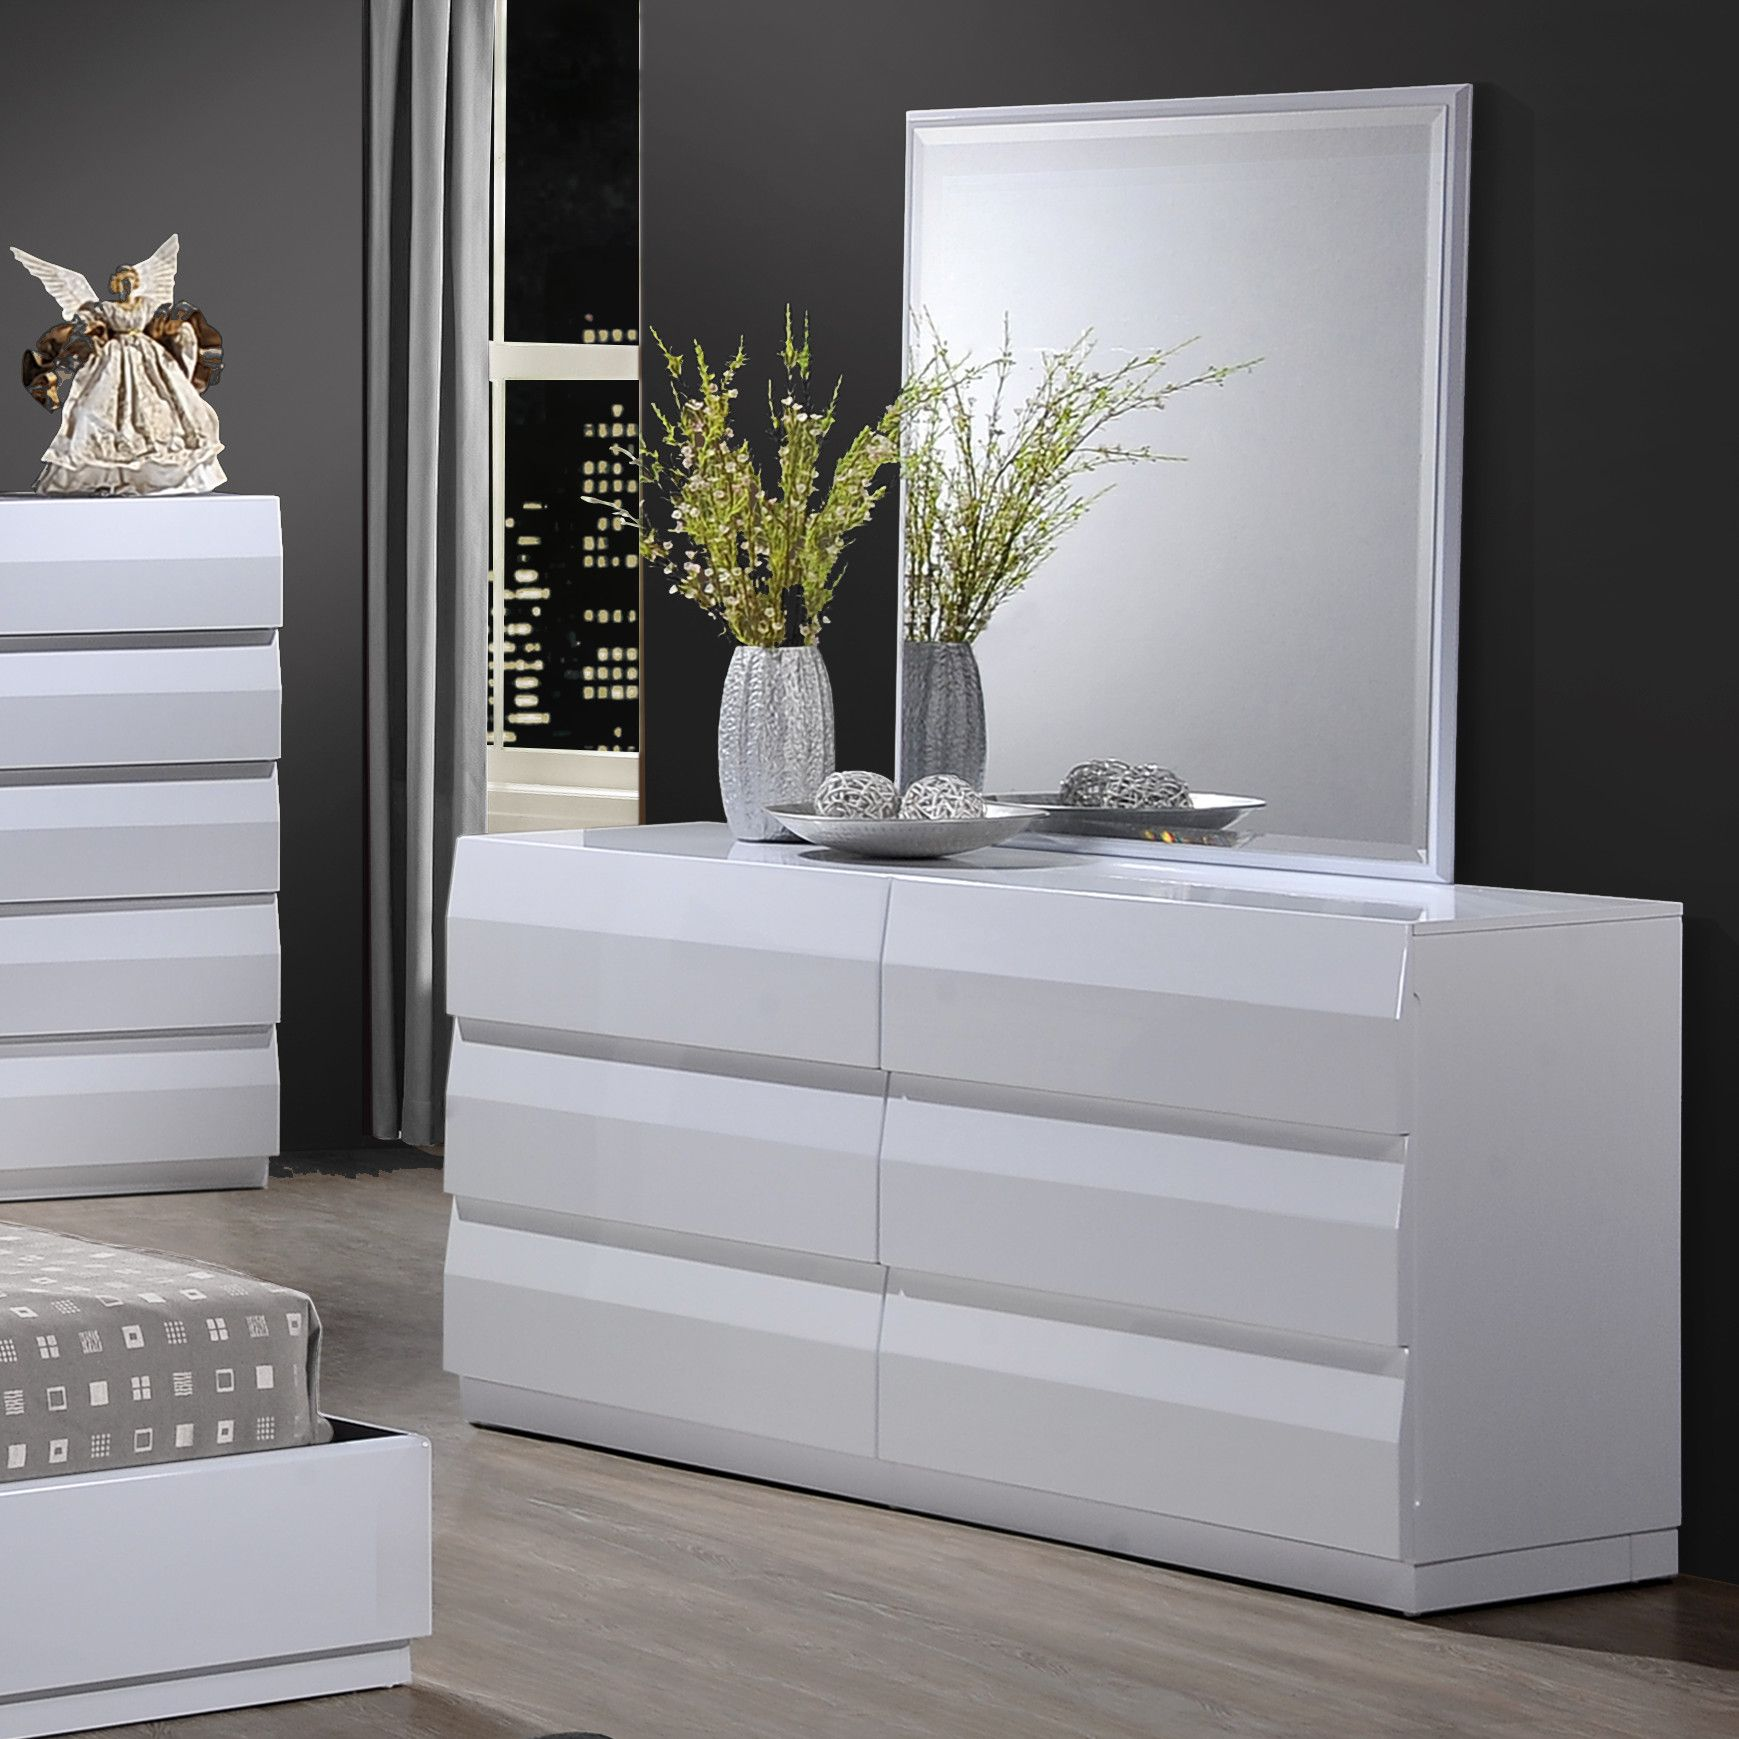 Dressers Features Double Dresser Mirror Available Price Wayfair Global Furniture Usa Furniture 6 Drawer Dresser [ 1739 x 1739 Pixel ]